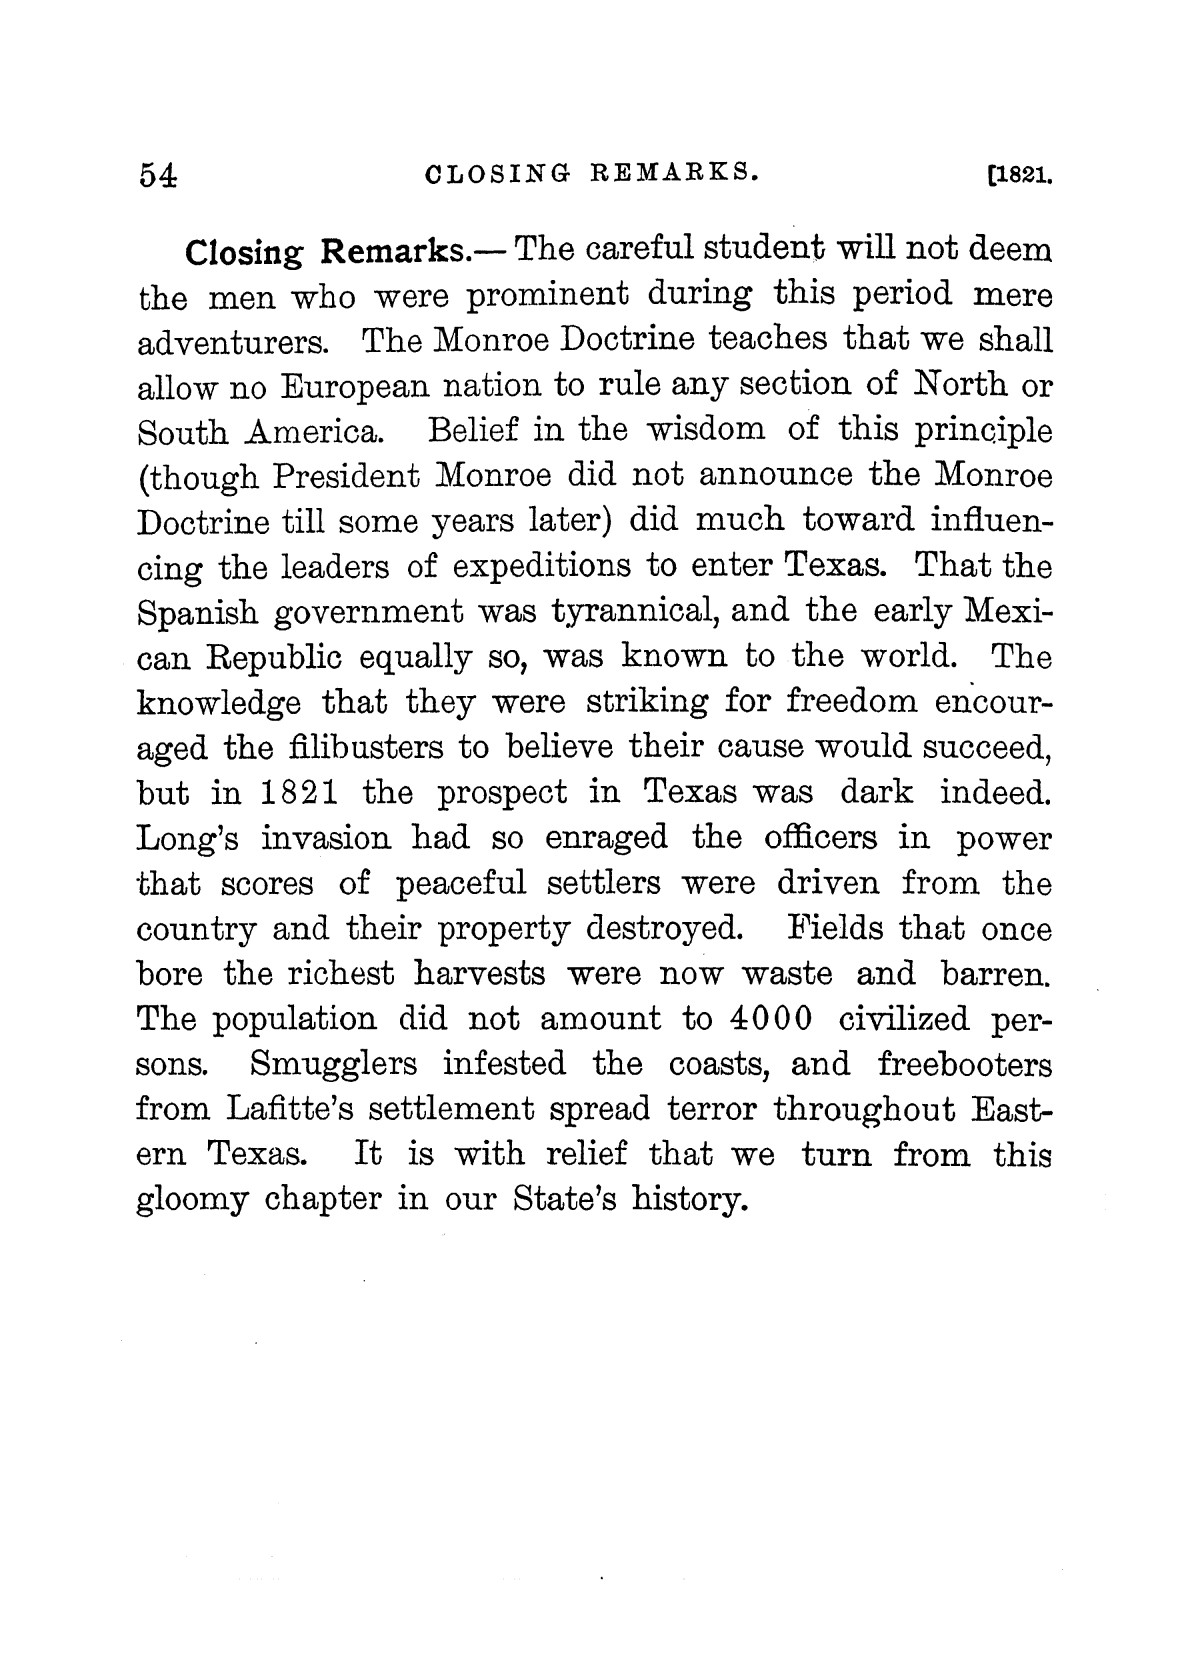 A new history of Texas for schools : also for general reading and for teachers preparing themselves for examination                                                                                                      [Sequence #]: 68 of 412